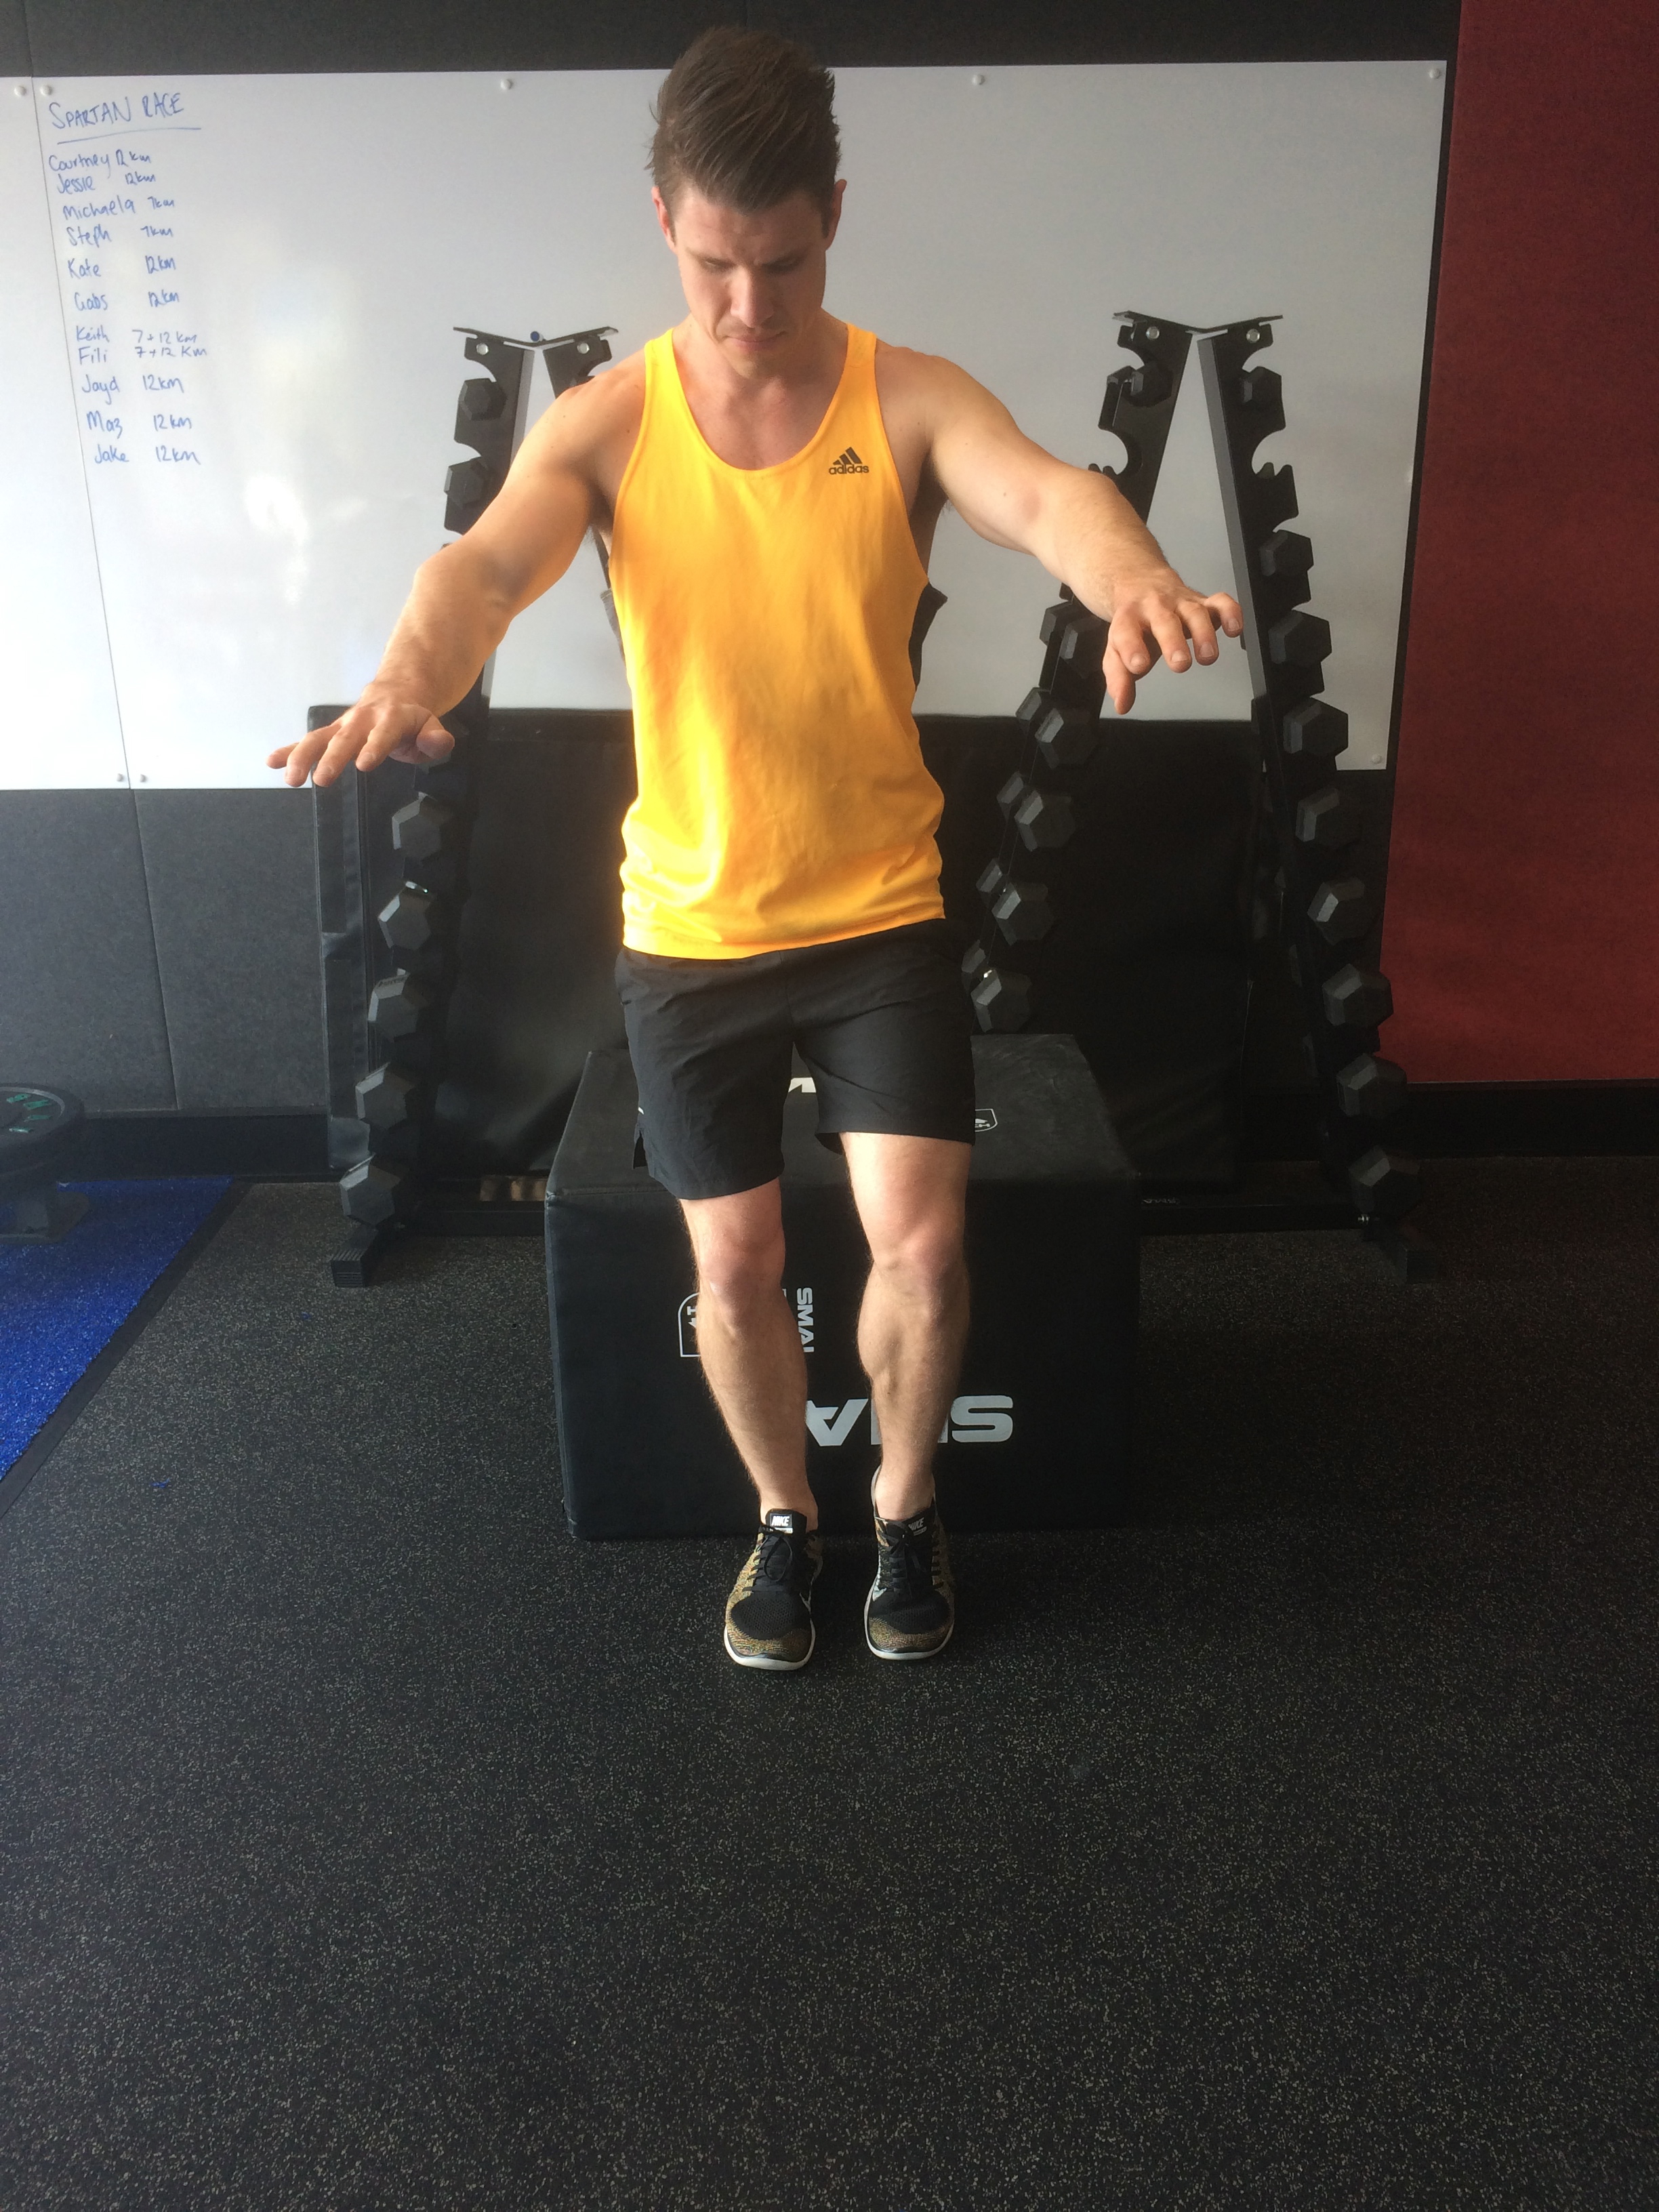 learn how to progress your squat at the function movement club, local northern beachs chiropractor also servicing gladesvilee